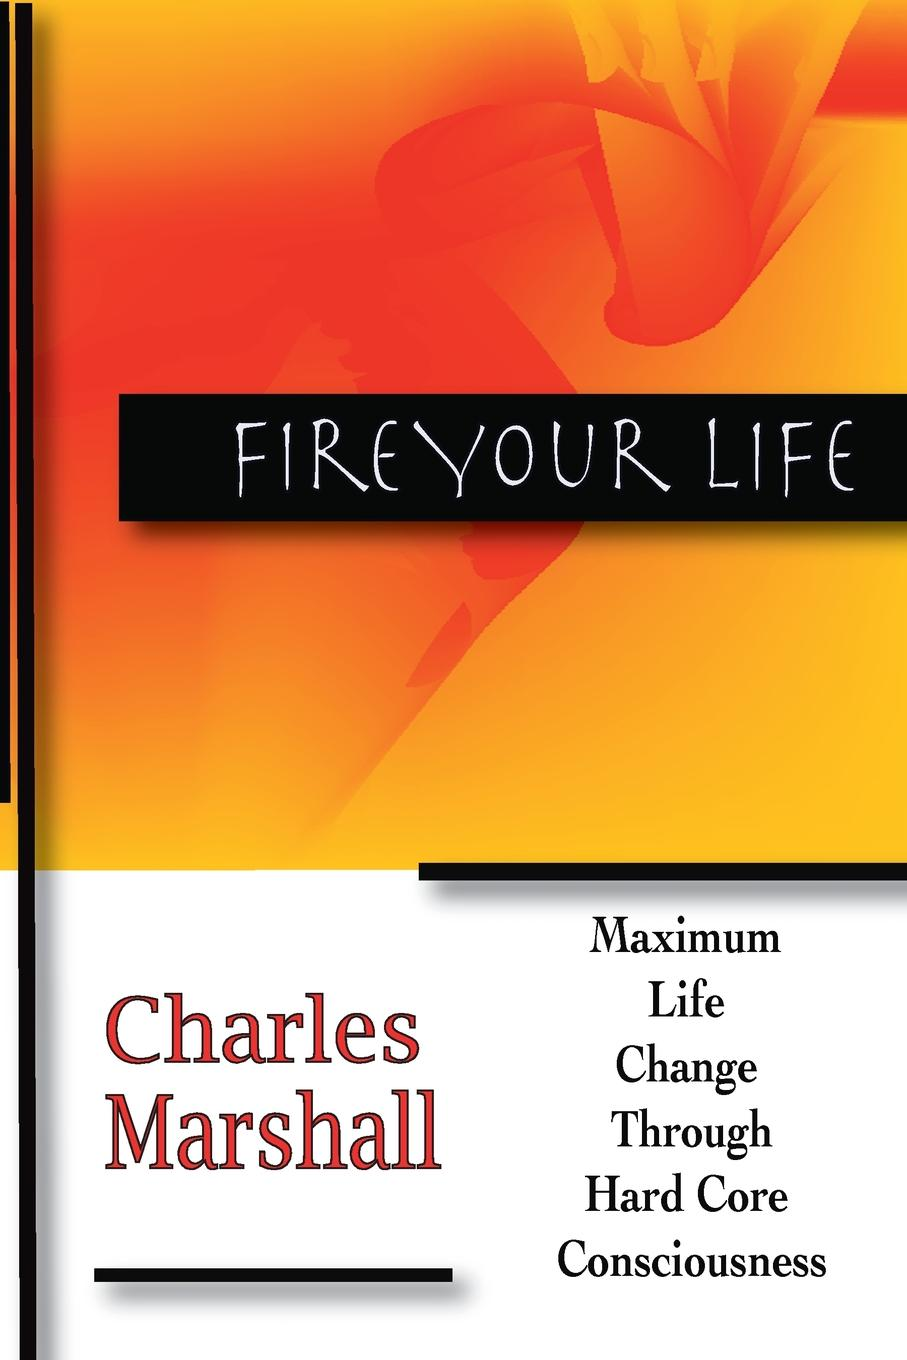 Charles Marshall Fire Your Life. MAXIMUM LIFE CHANGE THROUGH HARD CORE CONSCIOUSNESS fact ions for life